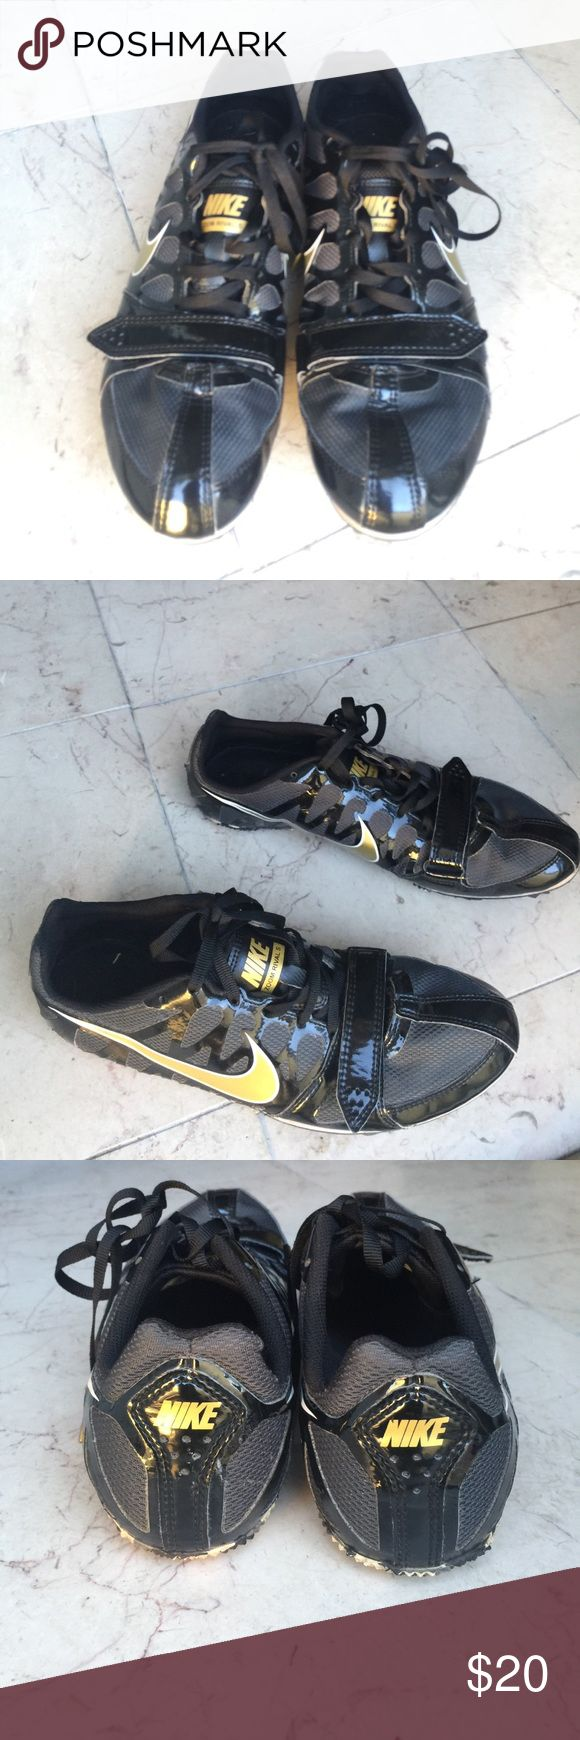 Nike Sprint shoe Nike Zoom Rival S. Black with gold logo. Adjustable strap at toe. Great condition Nike Shoes Athletic Shoes